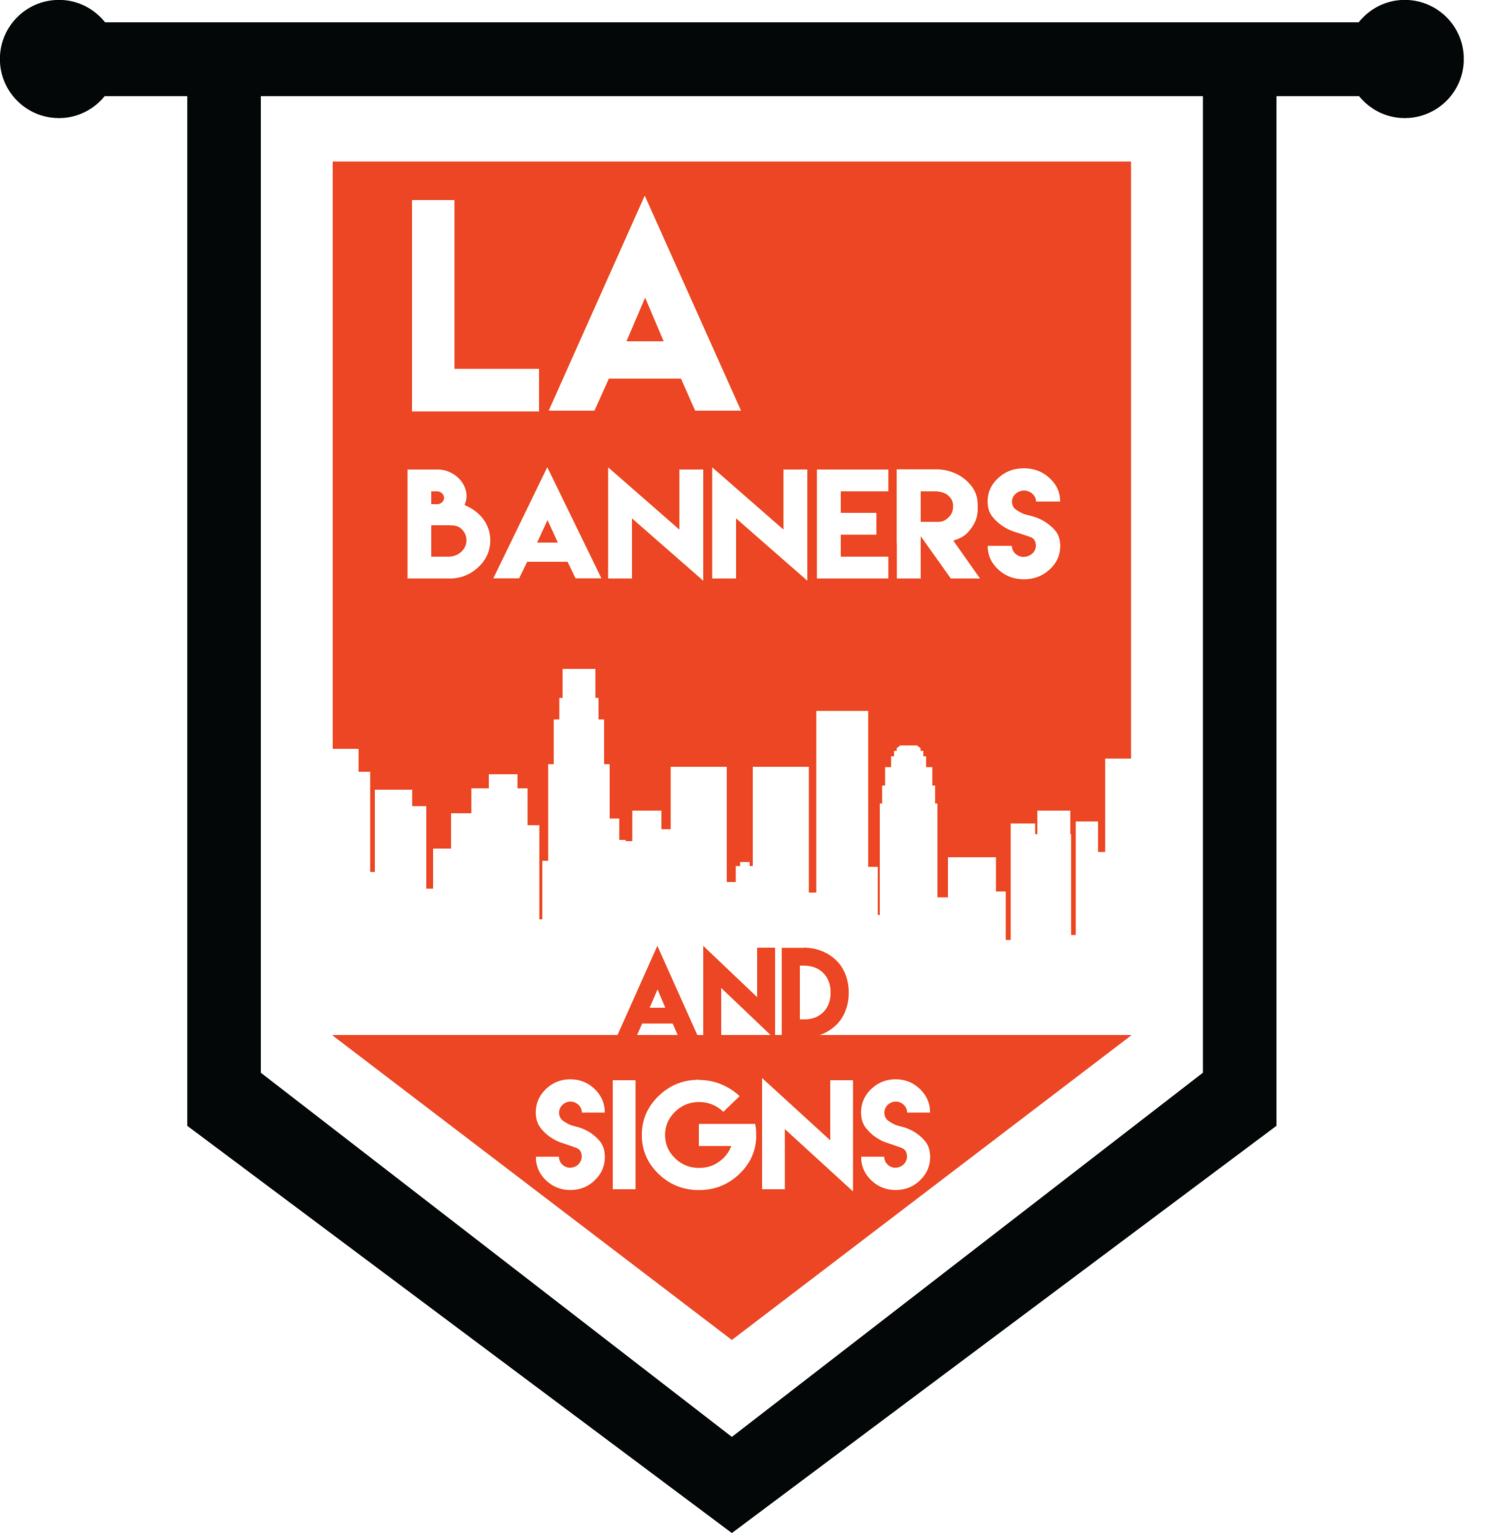 Custom Banners and Feather Flags - LA Banners and Signs